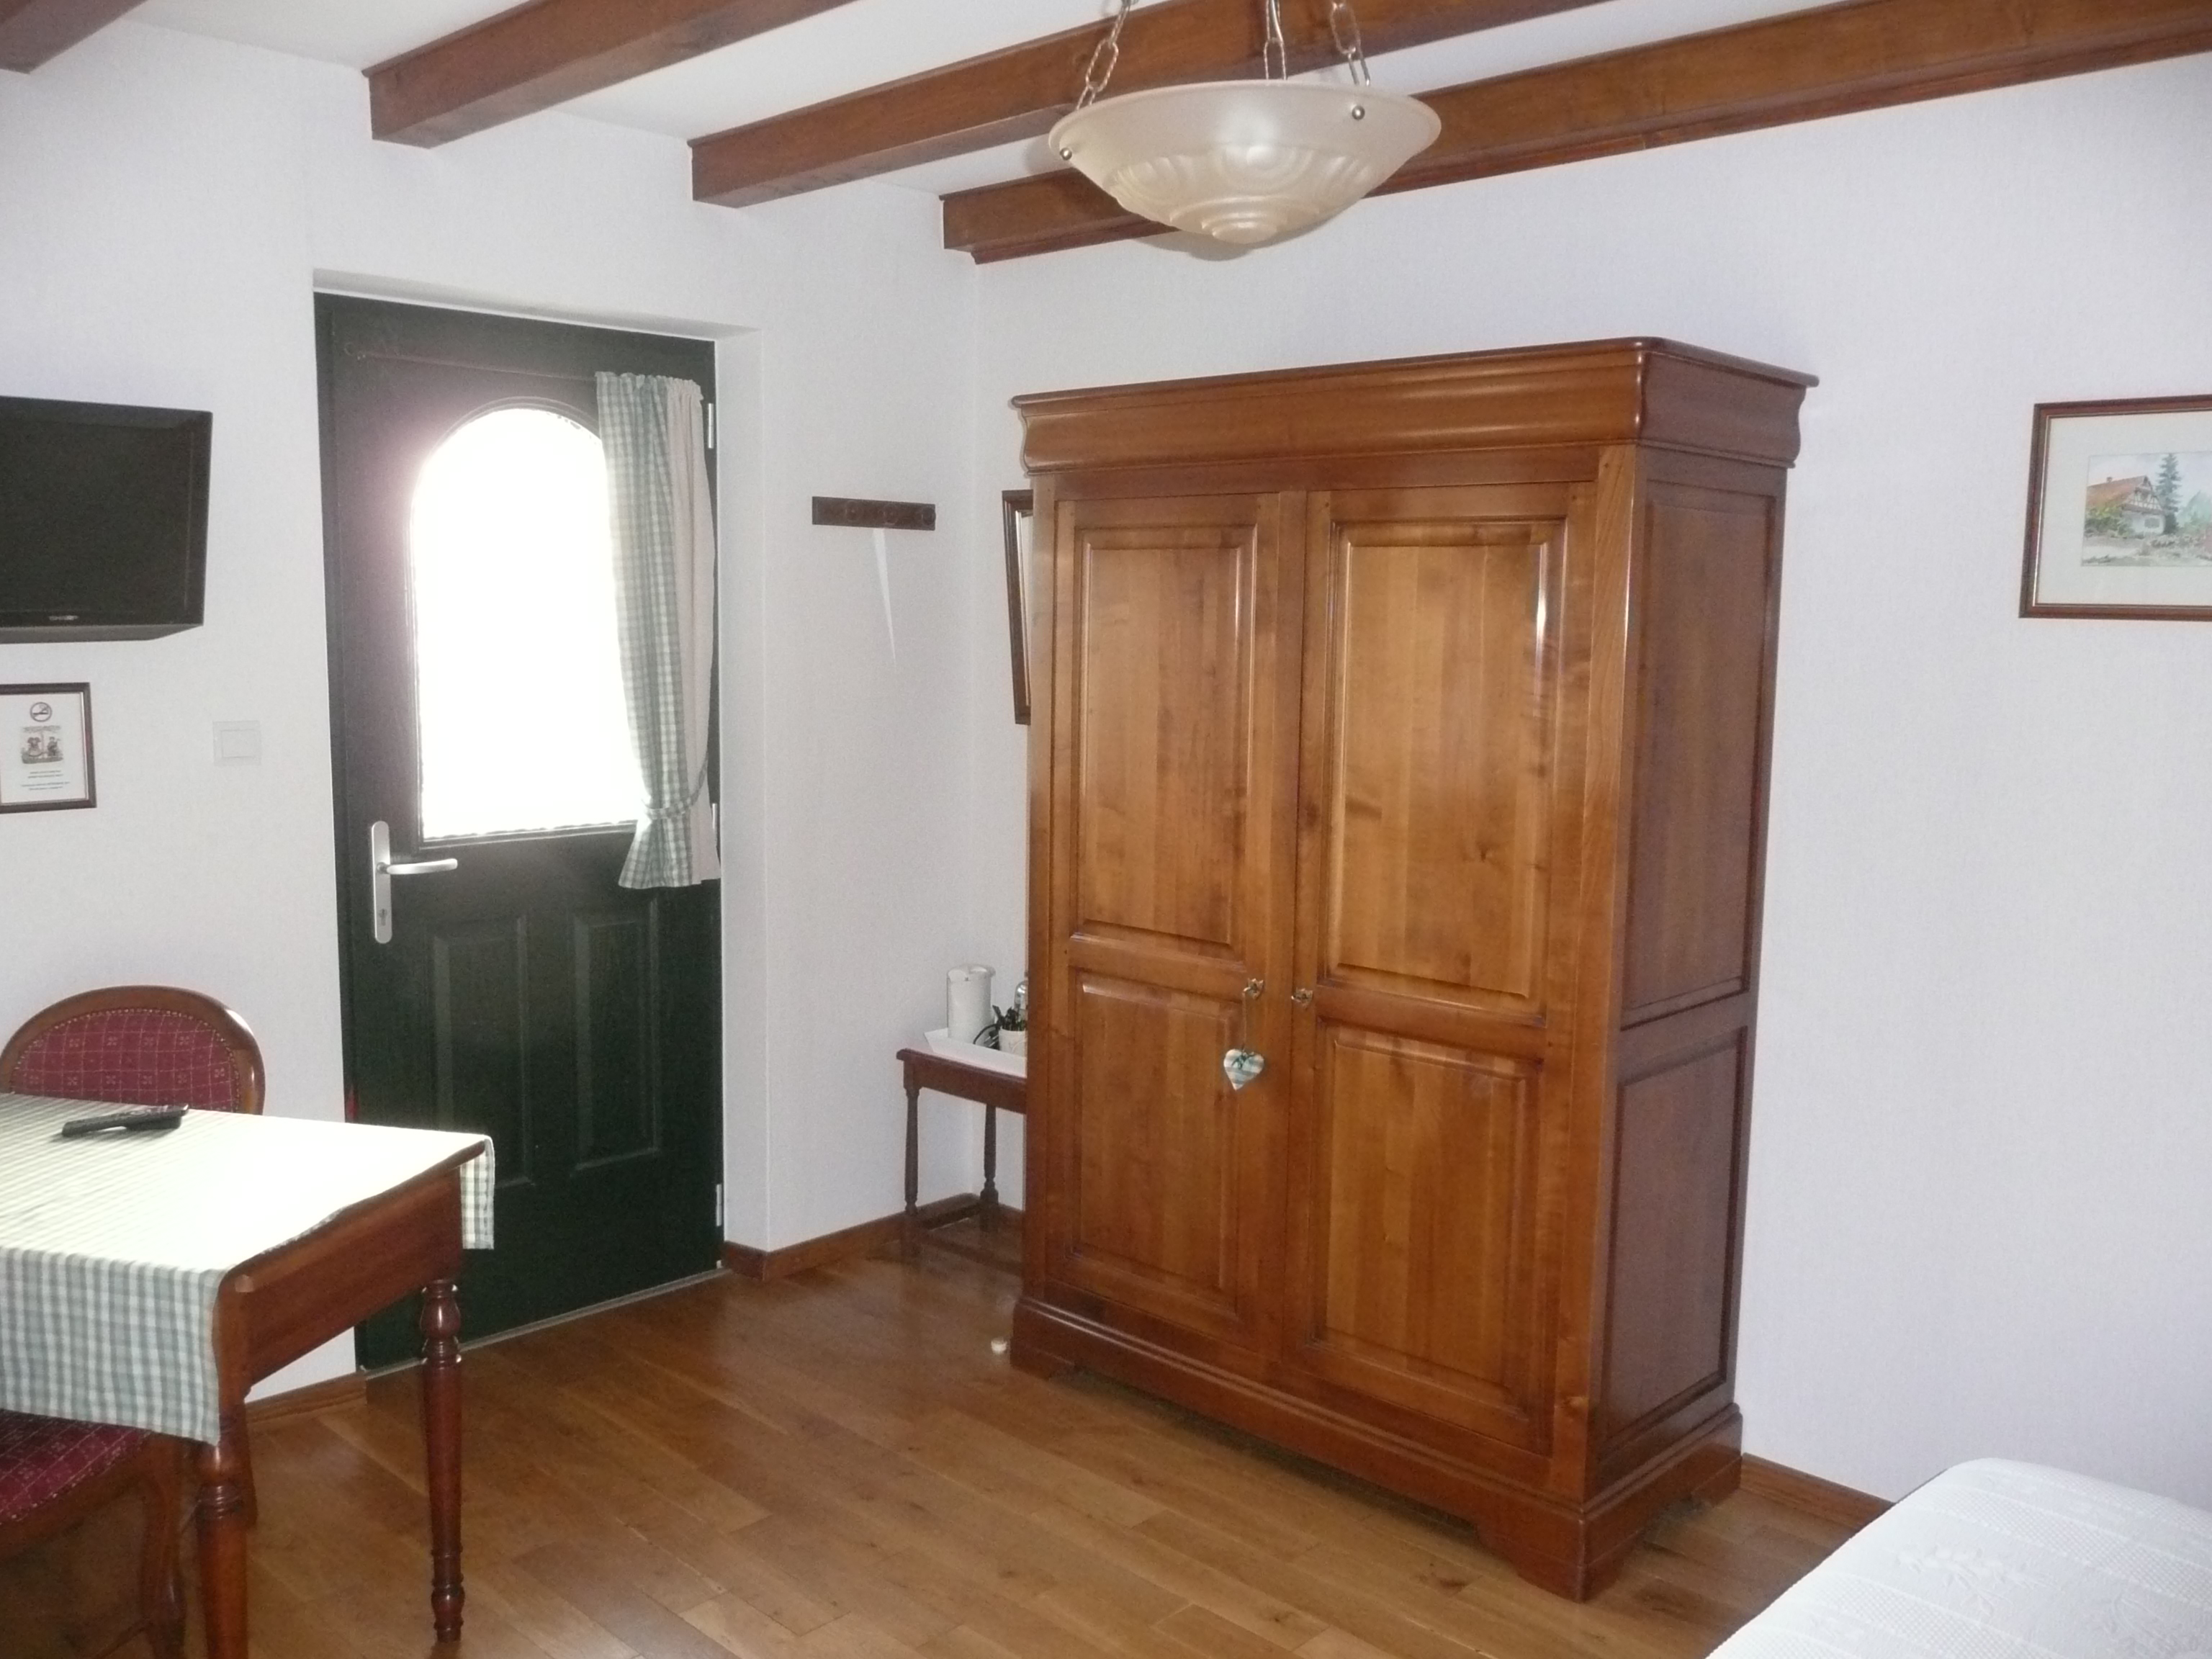 Mittelbuehl chambres d 39 h tes alsace for Chambre dhote alsace